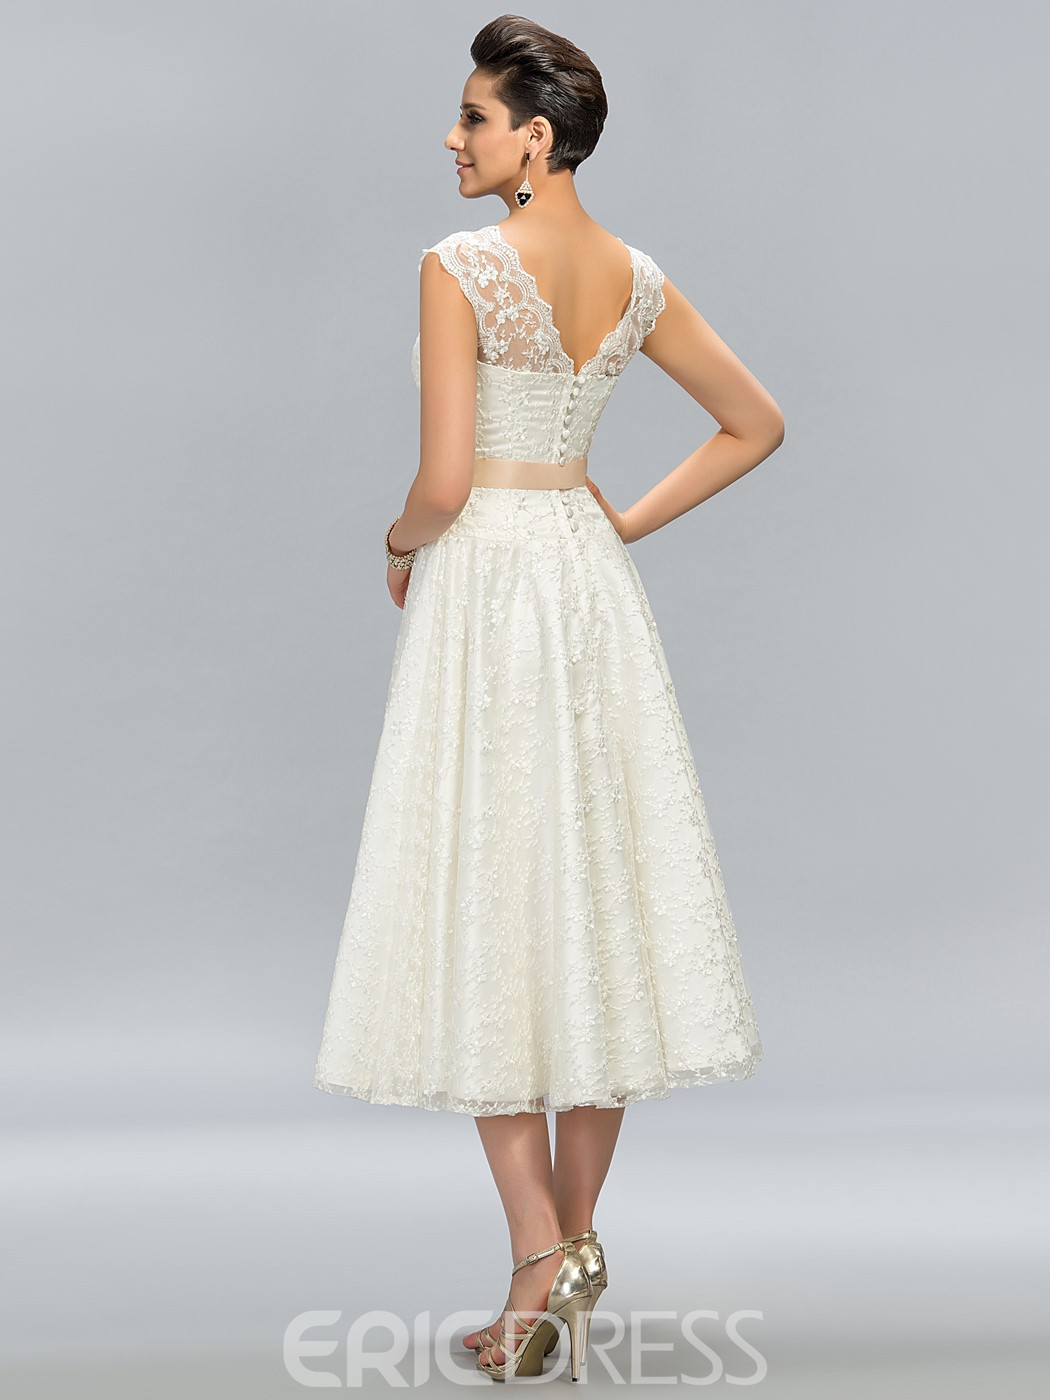 Fantastic A-Line Lace Jewel Neck Tea-Length Junior Prom Dress